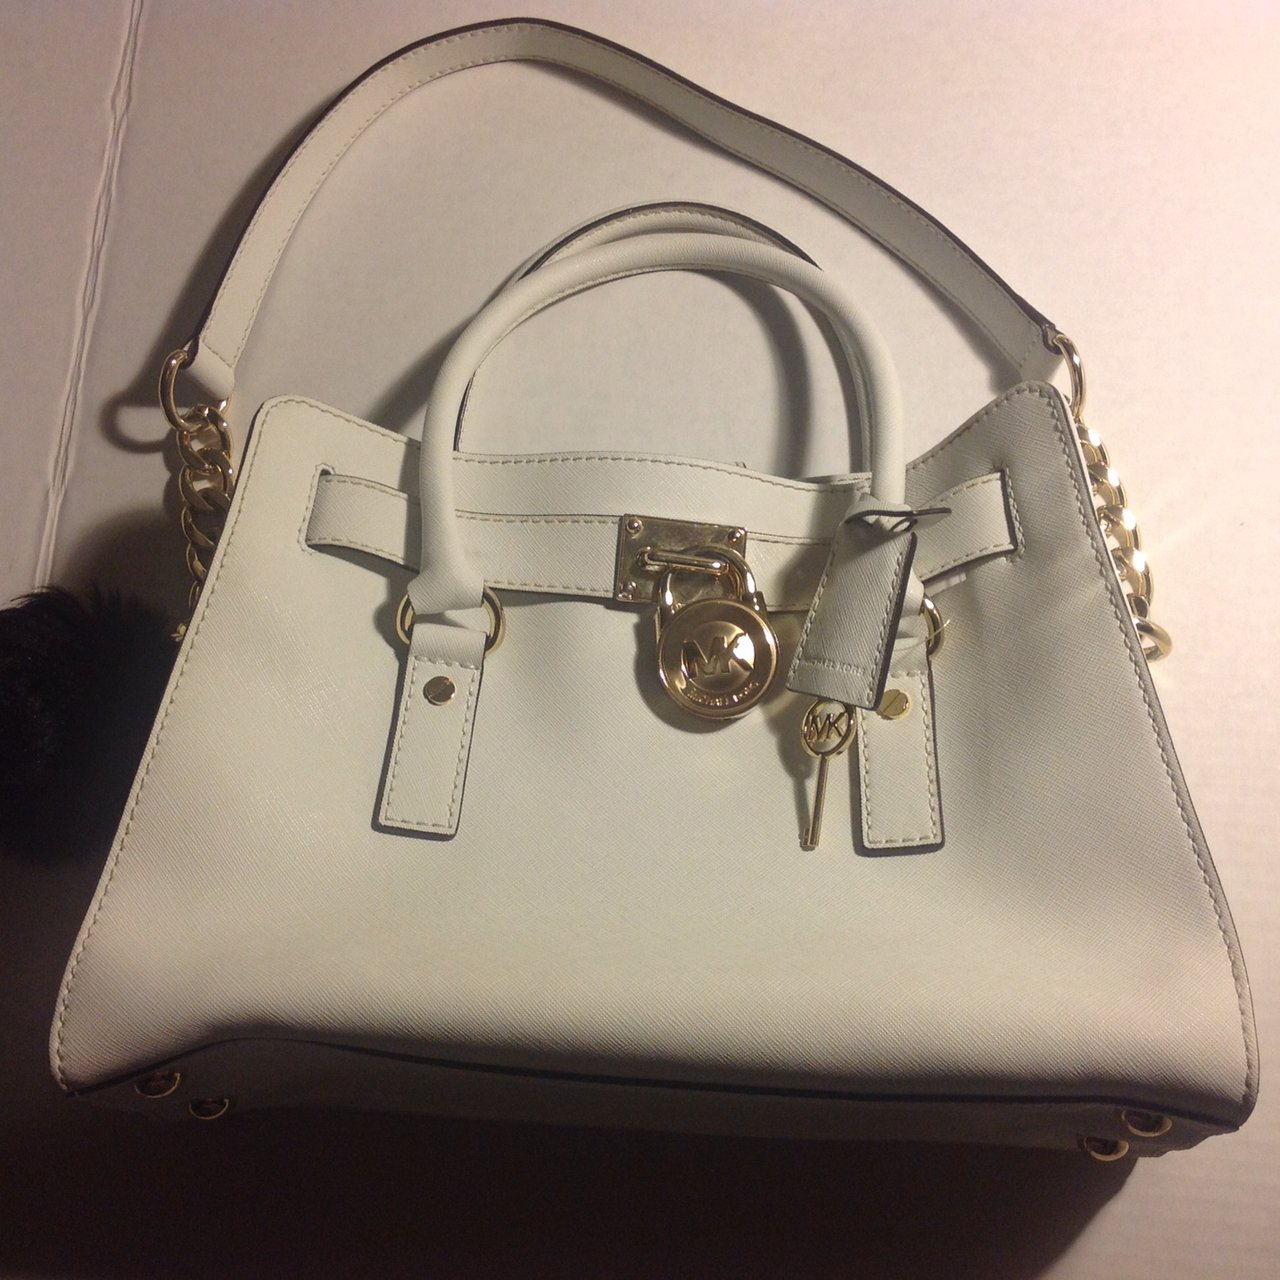 74c246d06e23 Michael Kors authentic white handbag. In excellent pre-loved - Depop